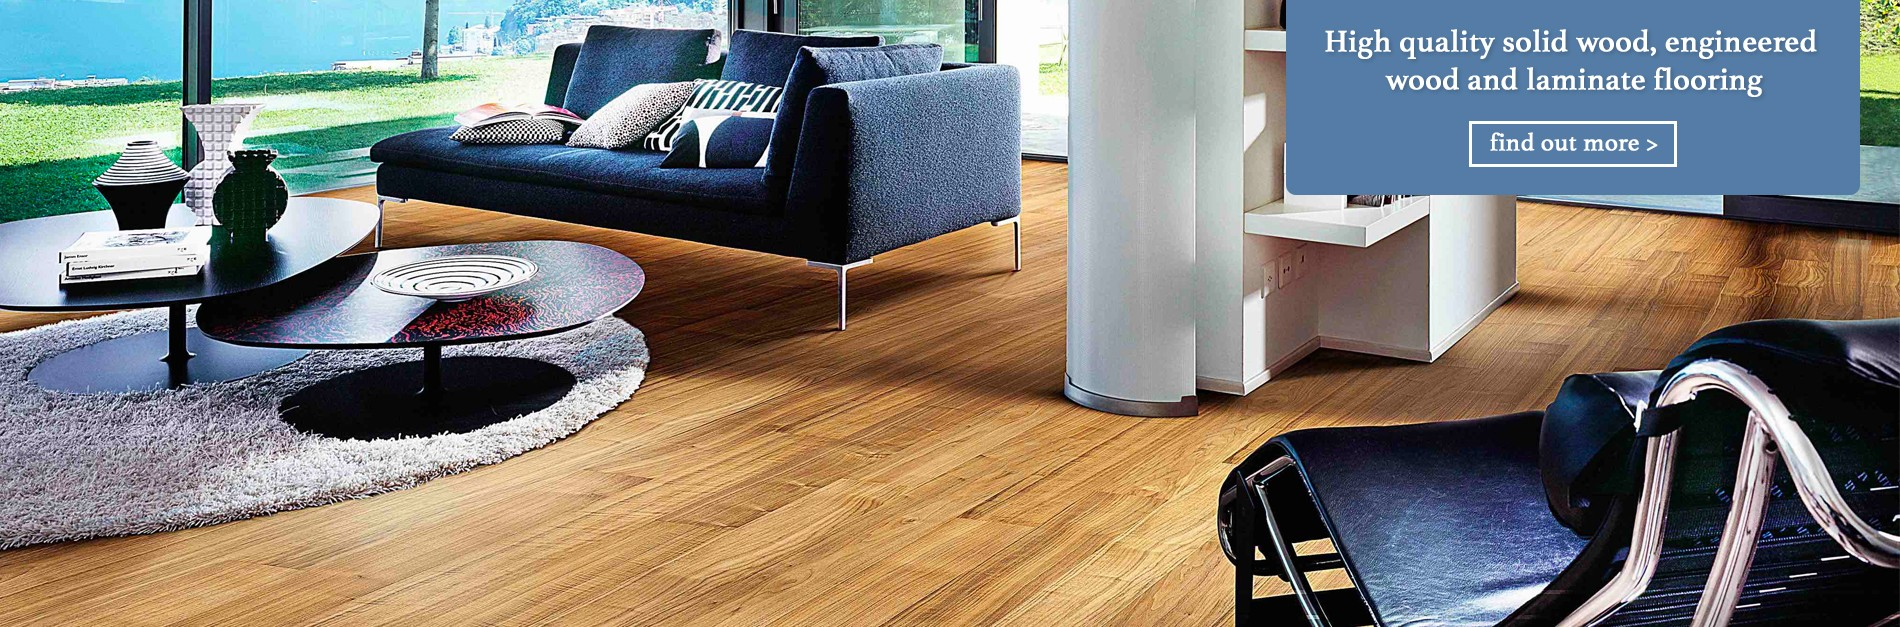 Engineered Wood Flooring by Cameron Lee